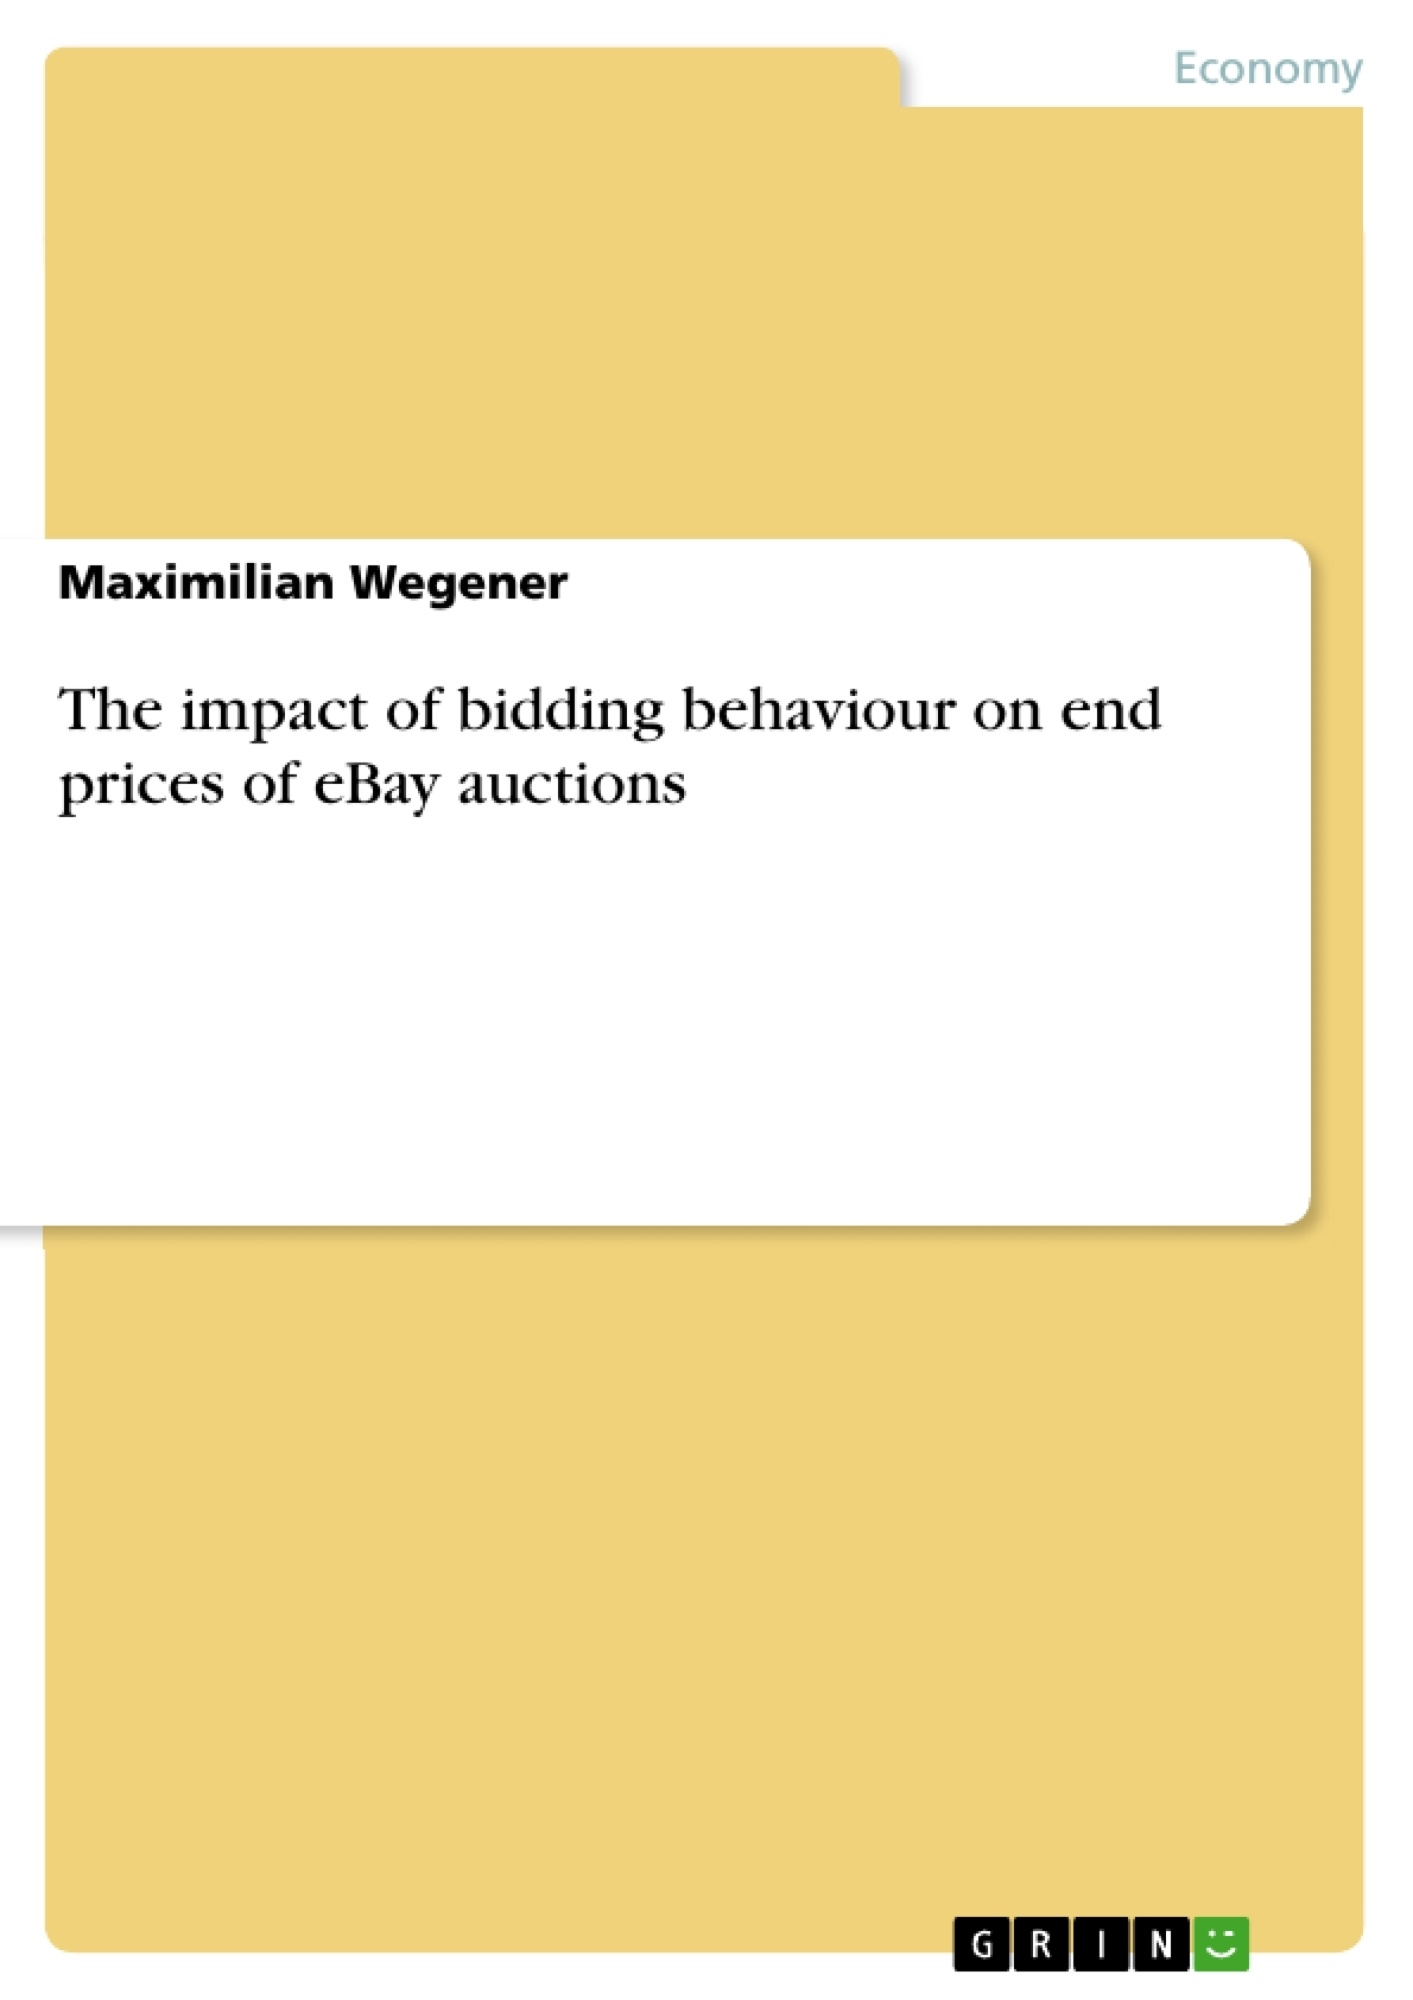 Title: The impact of bidding behaviour on end prices of eBay auctions